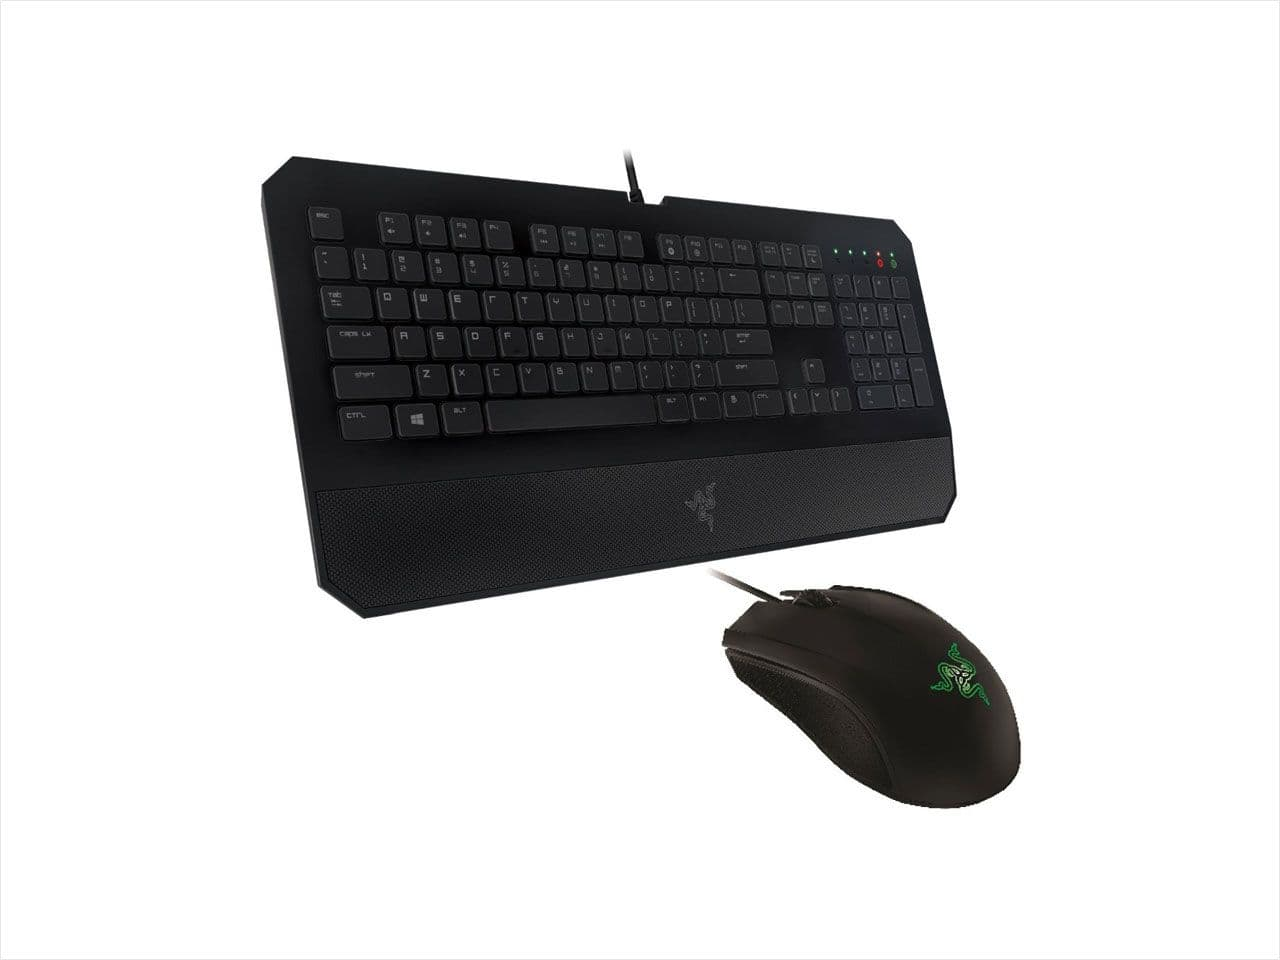 Razer Essential - DeathStalker Gaming Keyboard and Abyssus Gaming Mouse Combo Bundle for $69.99 FS